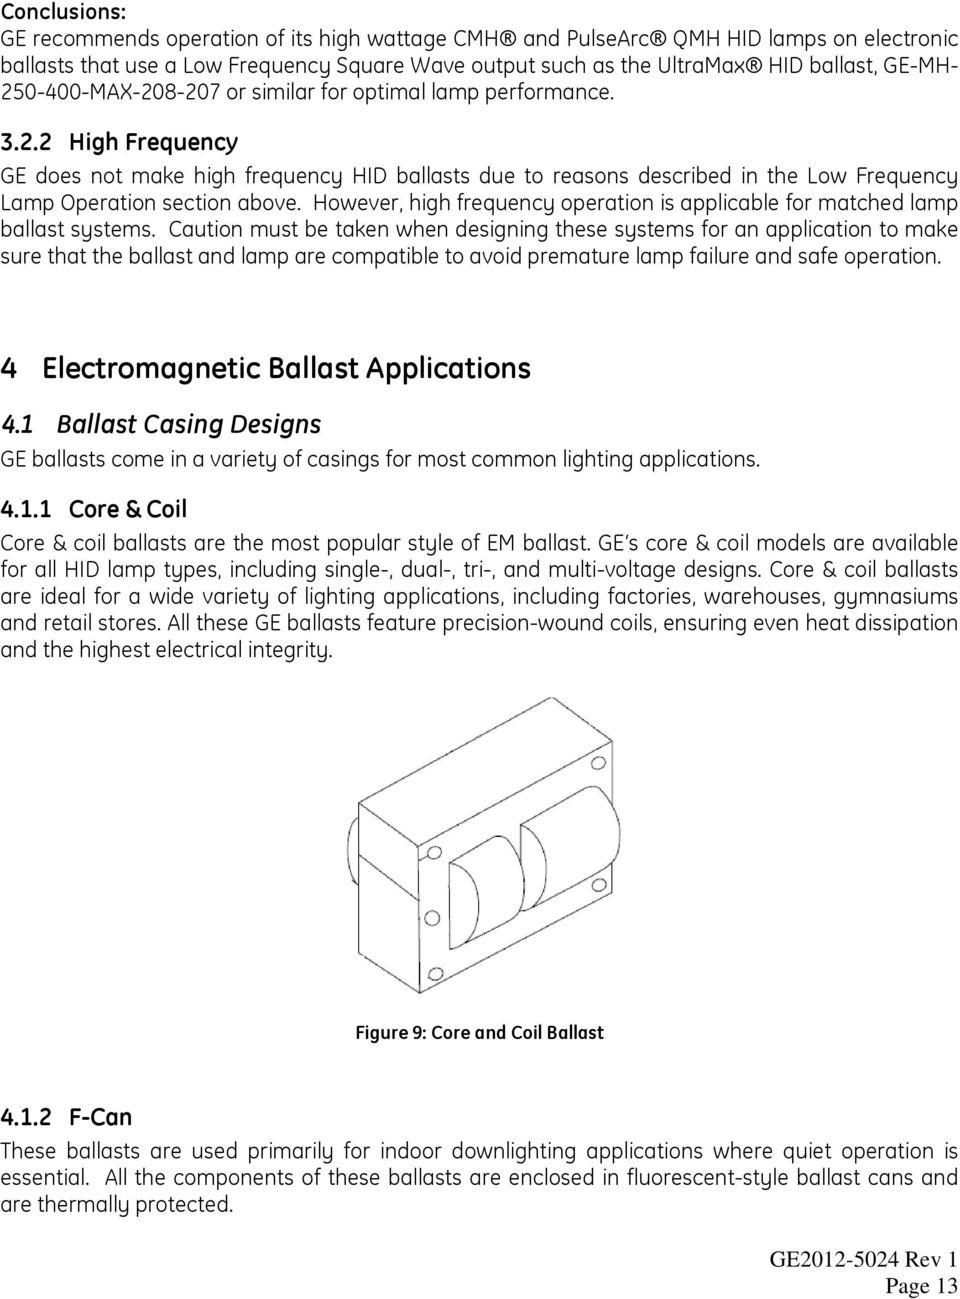 Hid Ballast Application Guide Pdf Ge T8 Electronic Wiring Schematic However High Frequency Operation Is Applicable For Matched Lamp Systems